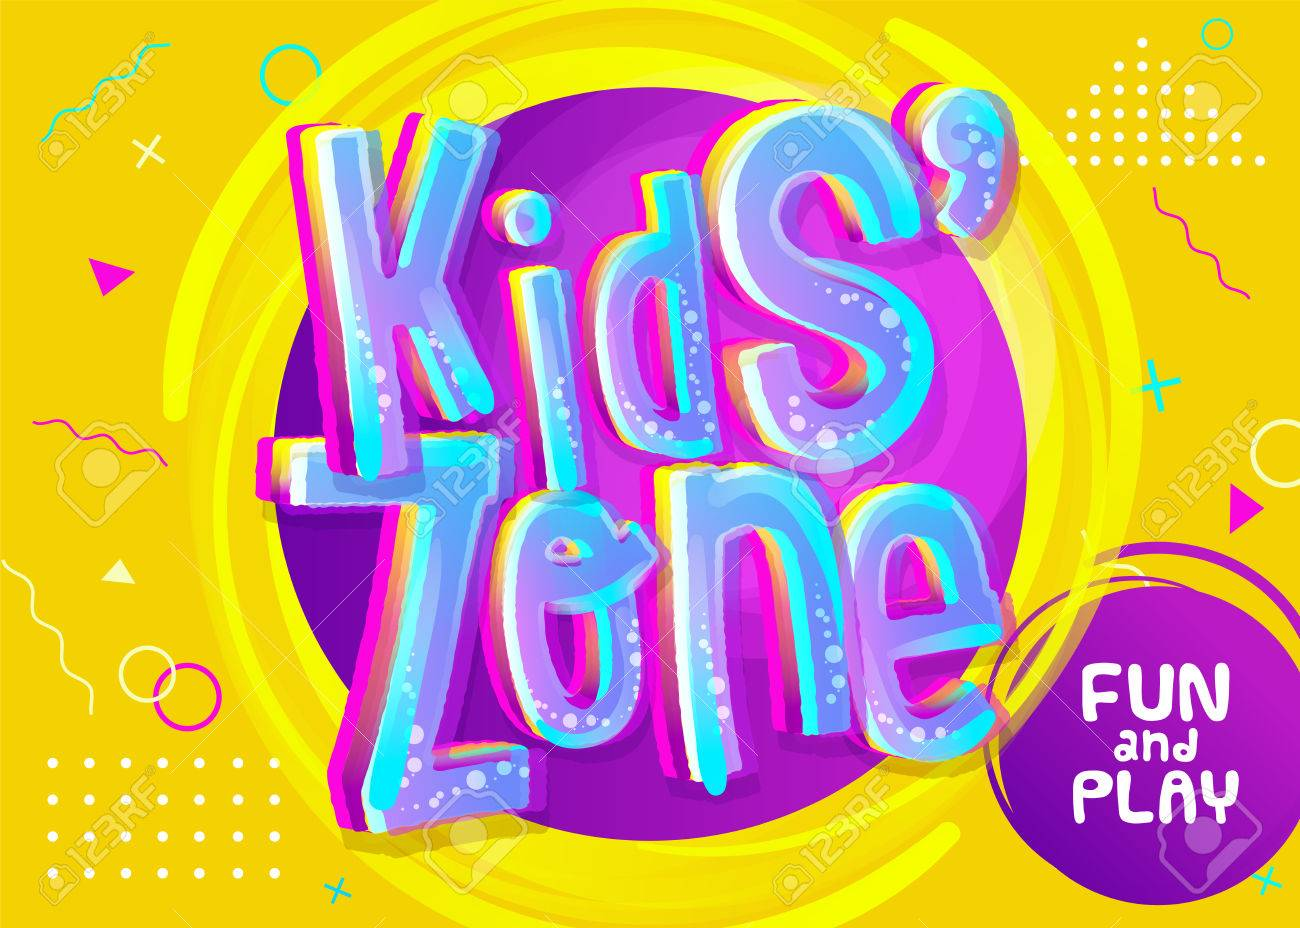 Kids Zone Vector Banner in Cartoon Style. Bright and Colorful Illustration for Children's Playroom Decoration. Funny Sign for Kids Game Room. Yellow Background with Childish Pattern. - 82758090